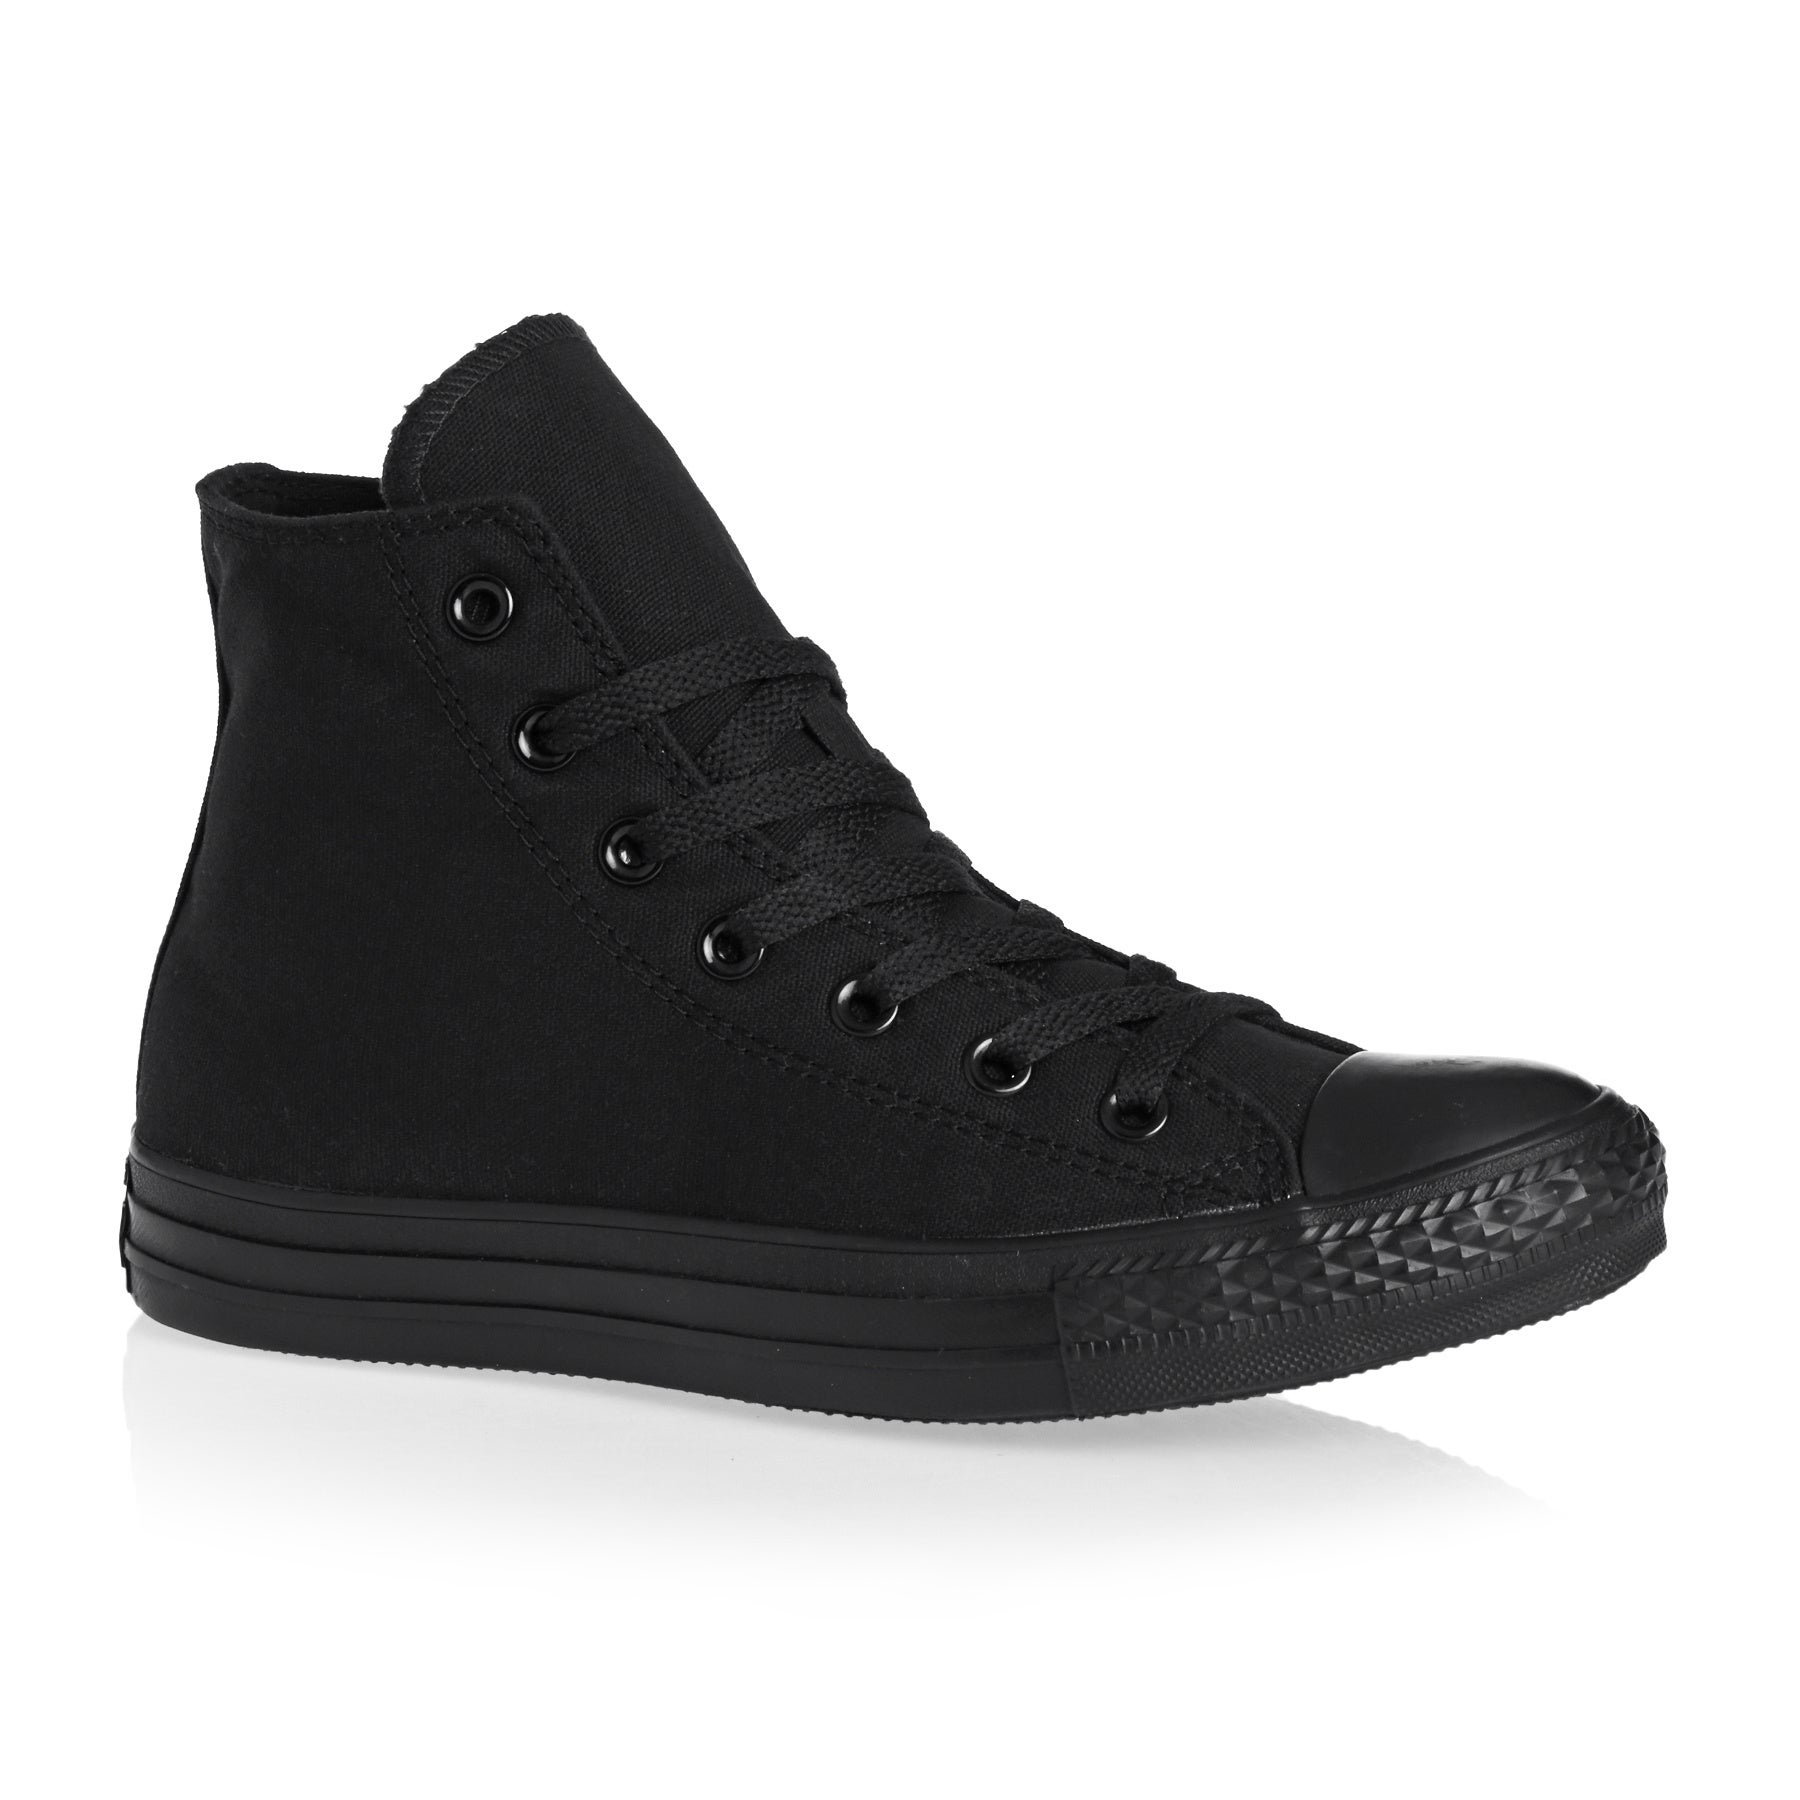 82ec4a56aef0 Converse Chuck Taylor All Stars Hi Shoes available from Surfdome